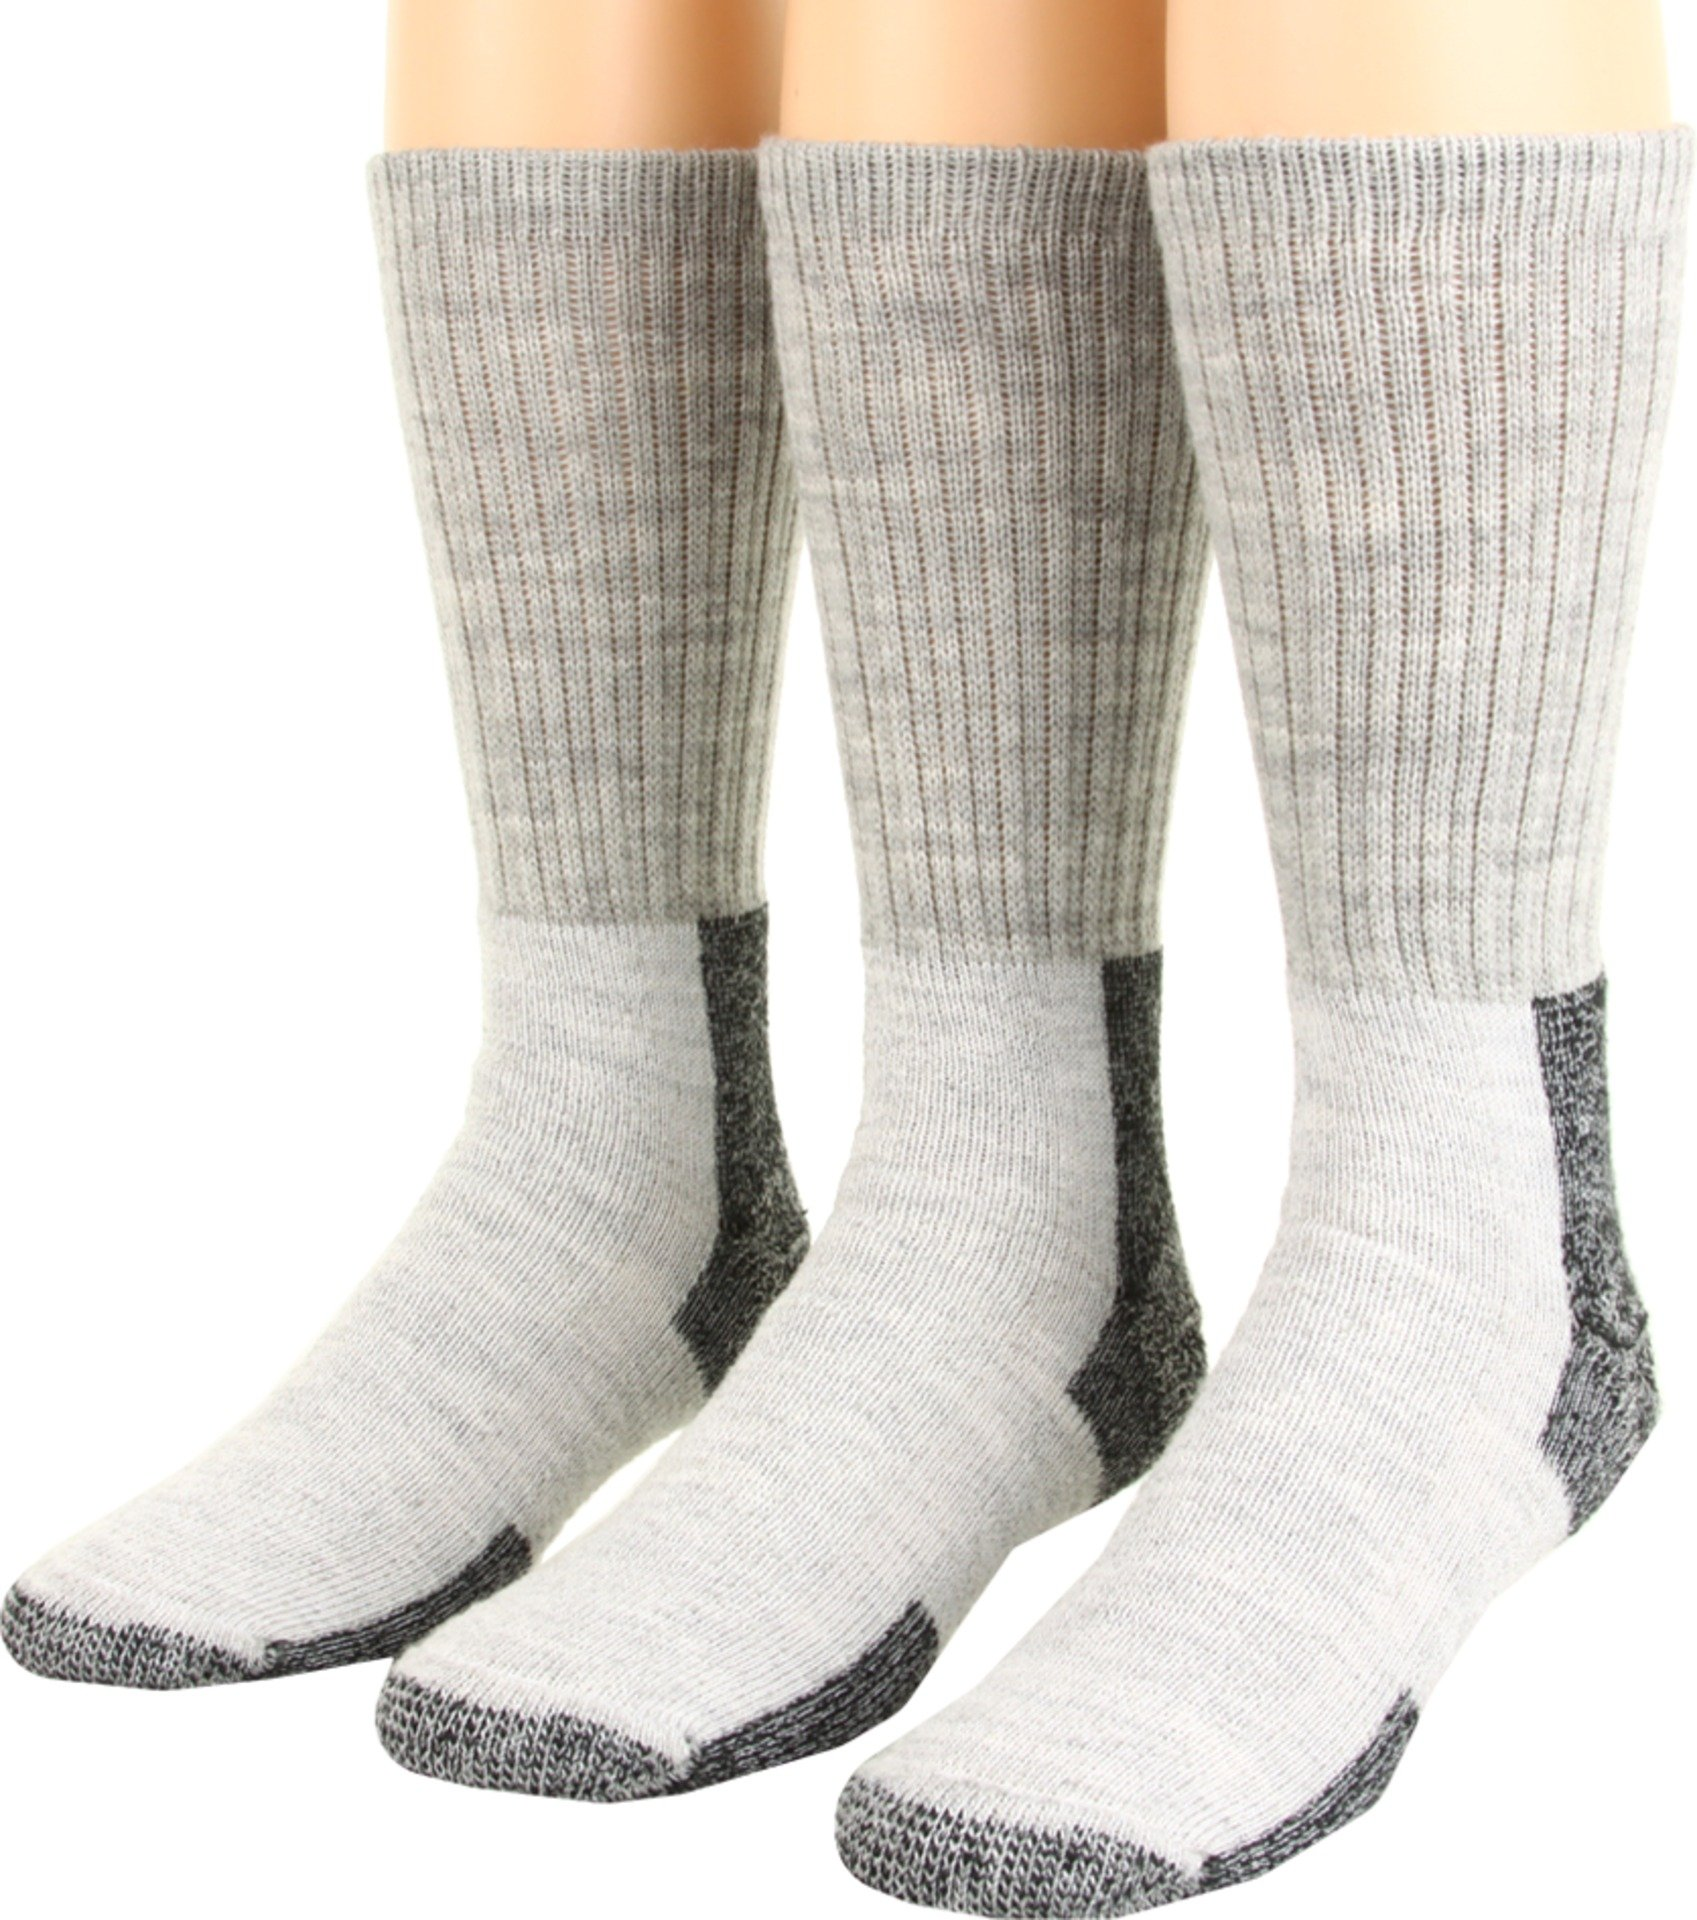 Thorlos Unisex Thick Cushion Hiking Wool Blend 3-Pack Gray/Black Large by thorlos